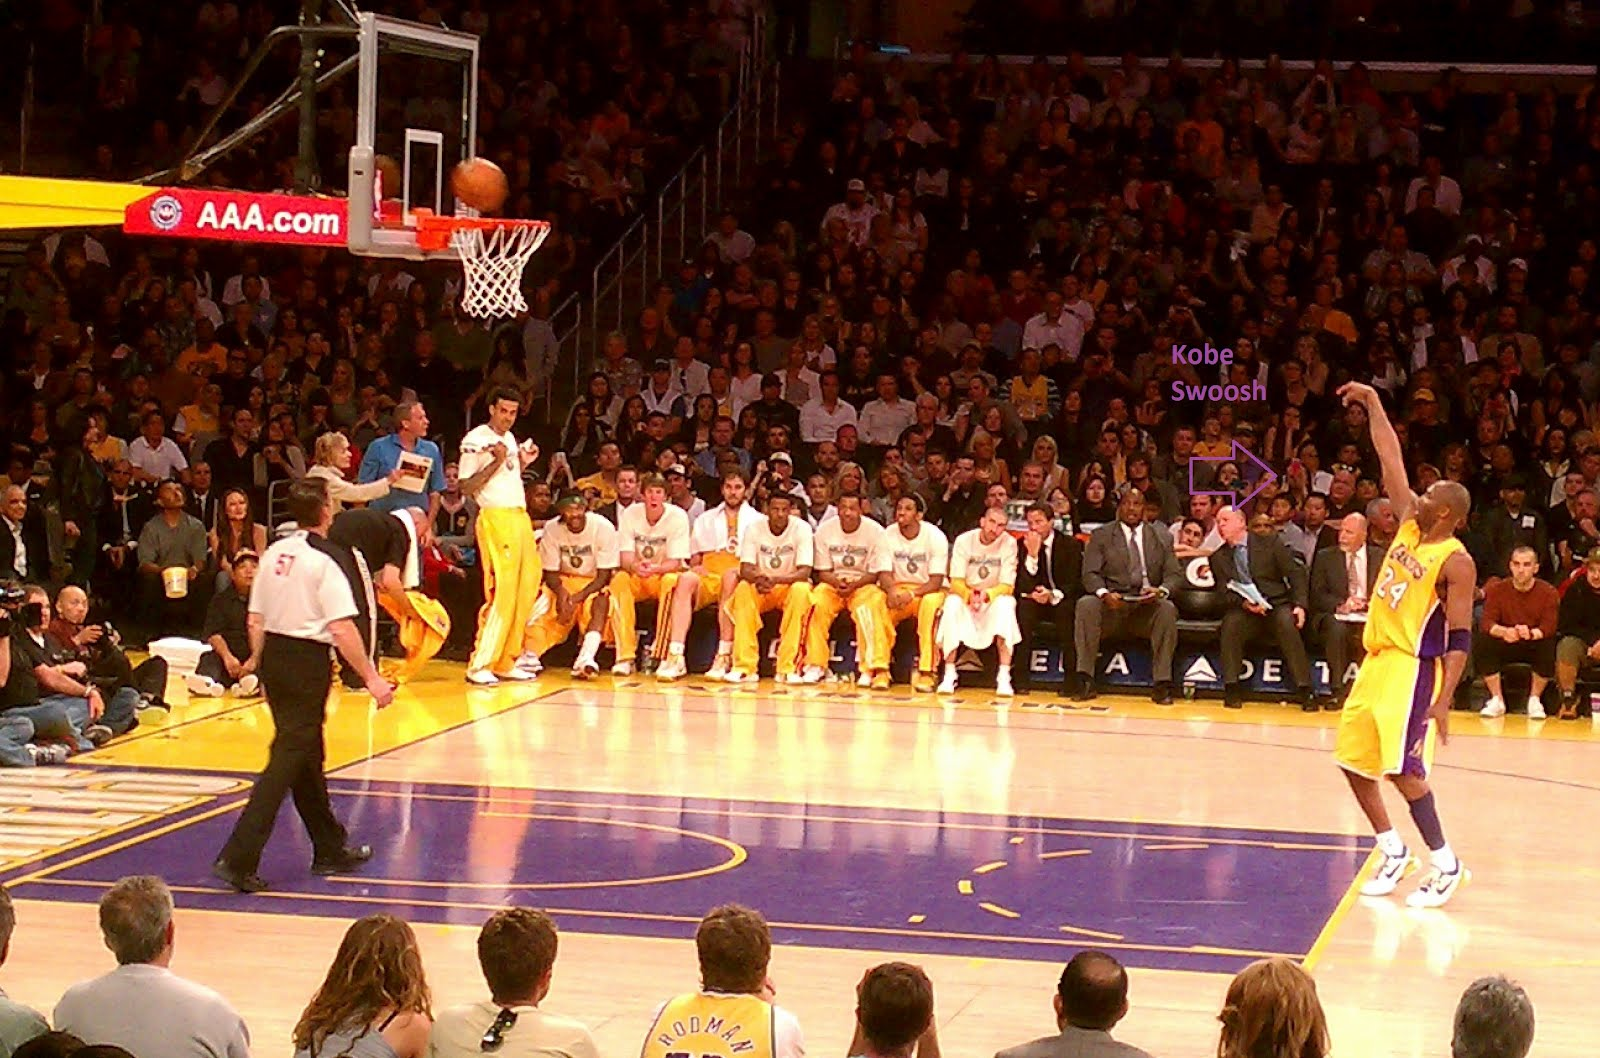 HIGH DOLLAR HIPPIE: Lakers GameLakers Game